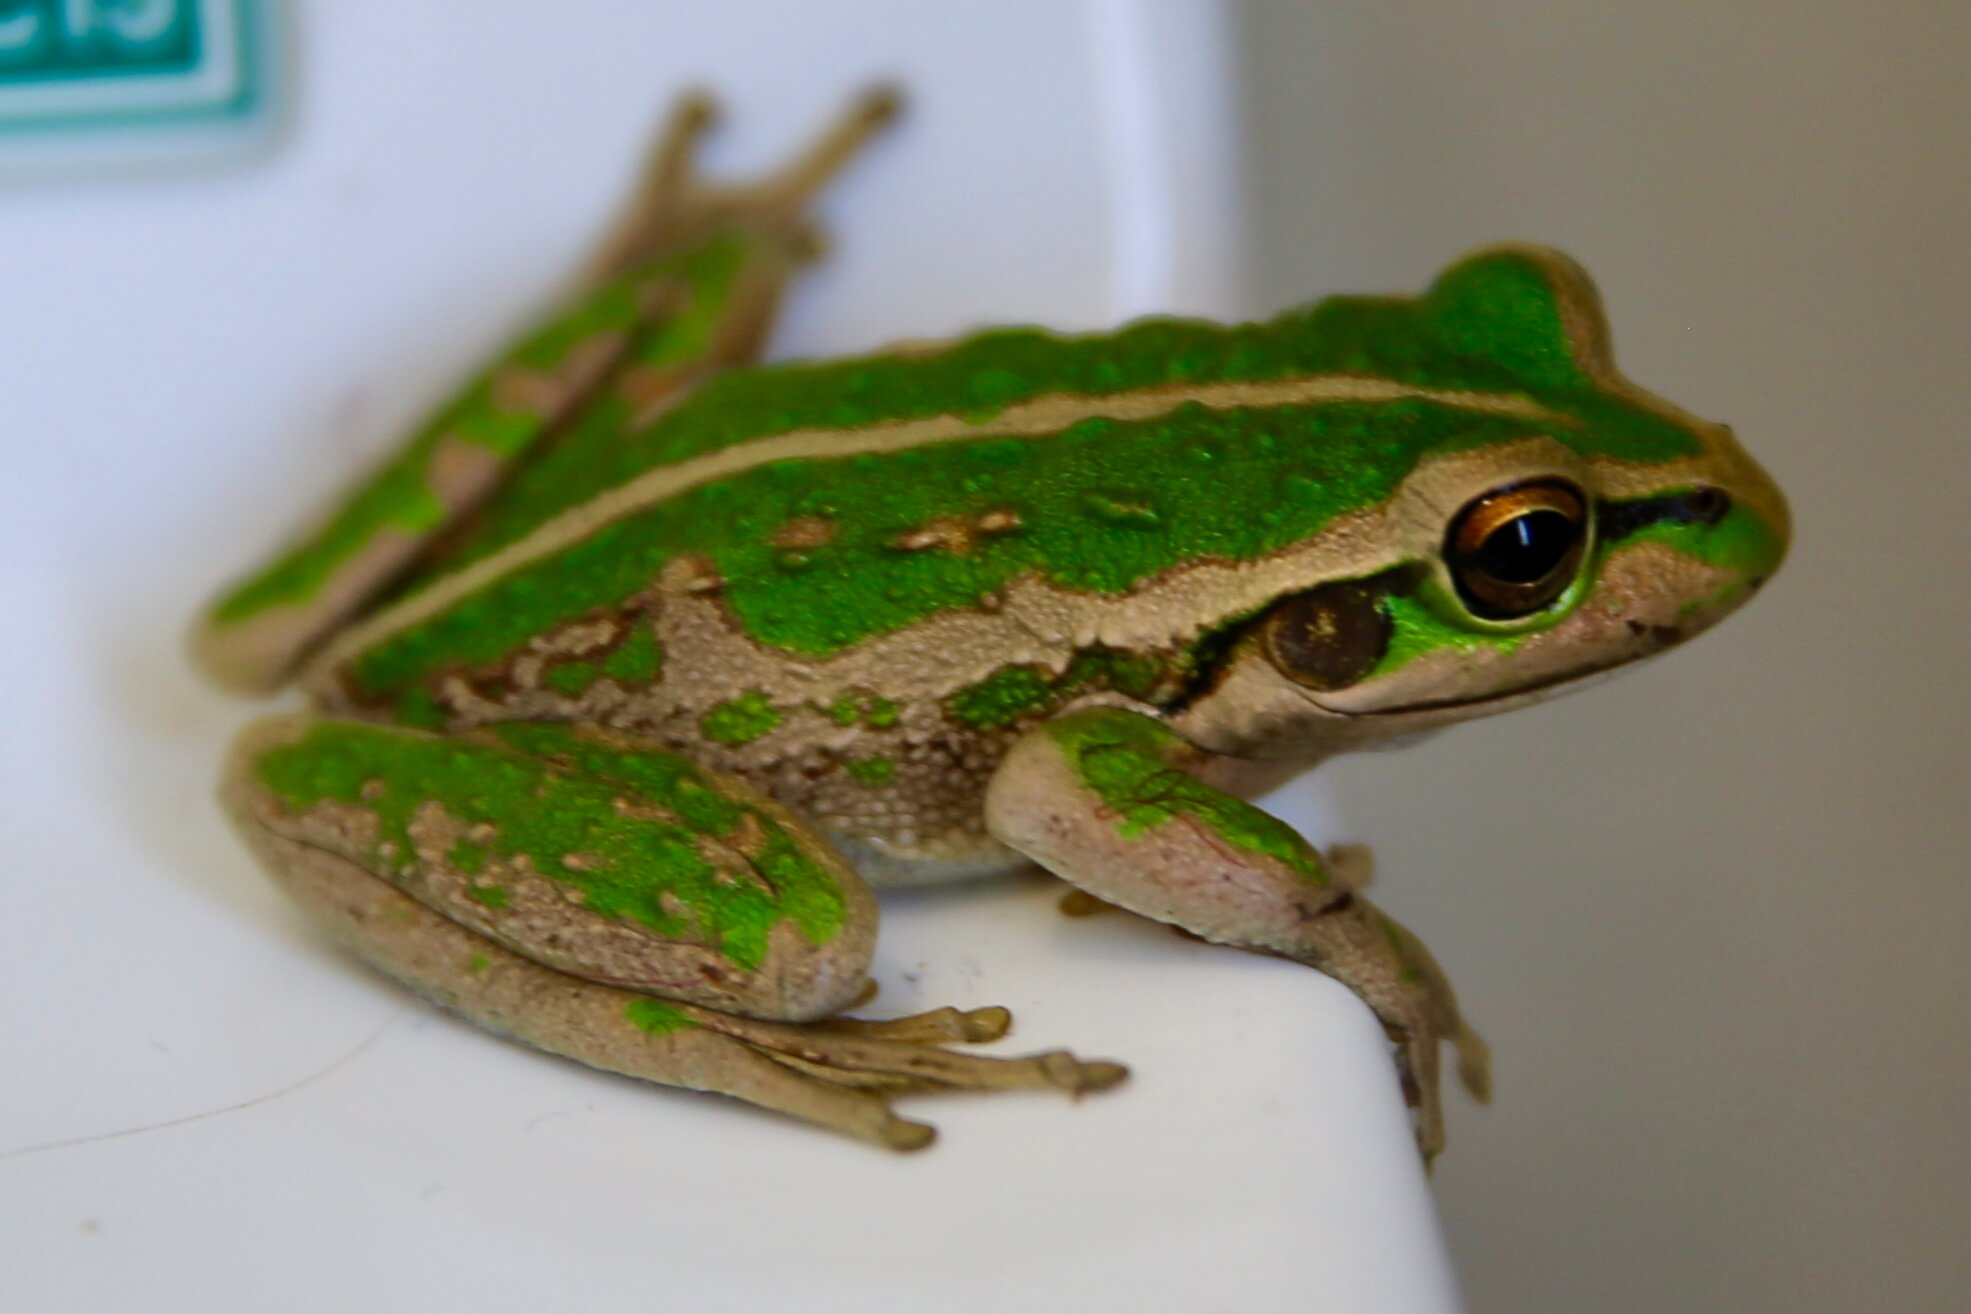 A cute Motorcycle frog in my bathroom at Busselton.